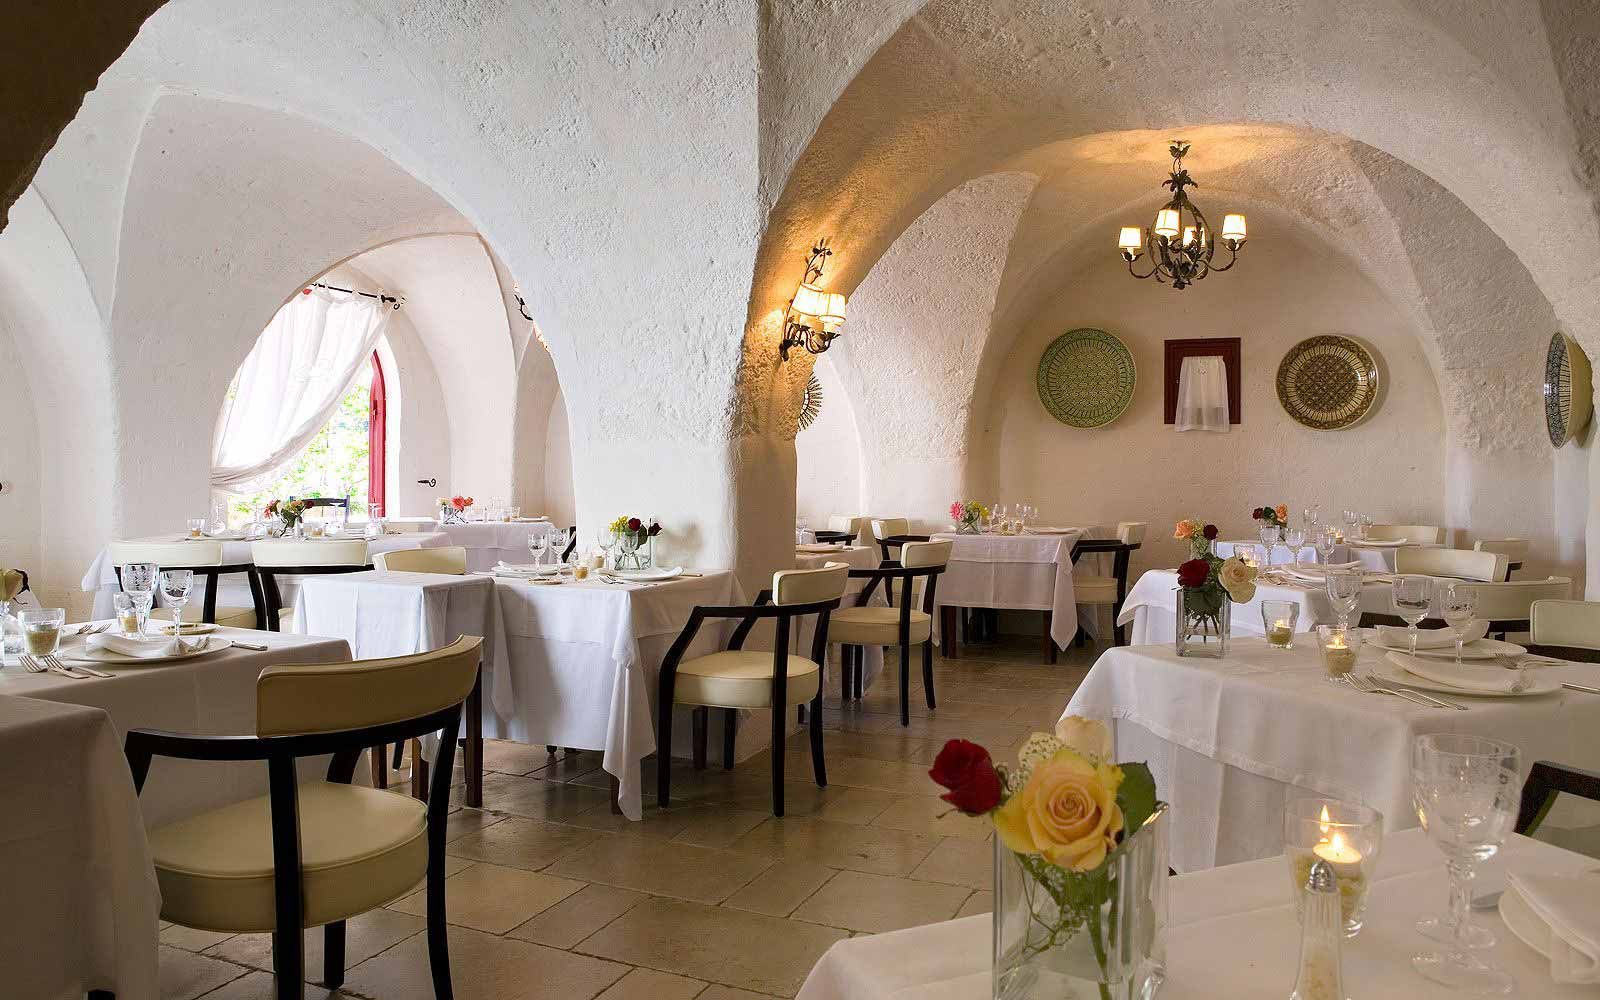 Restaurant at Masseria Torre Coccaro